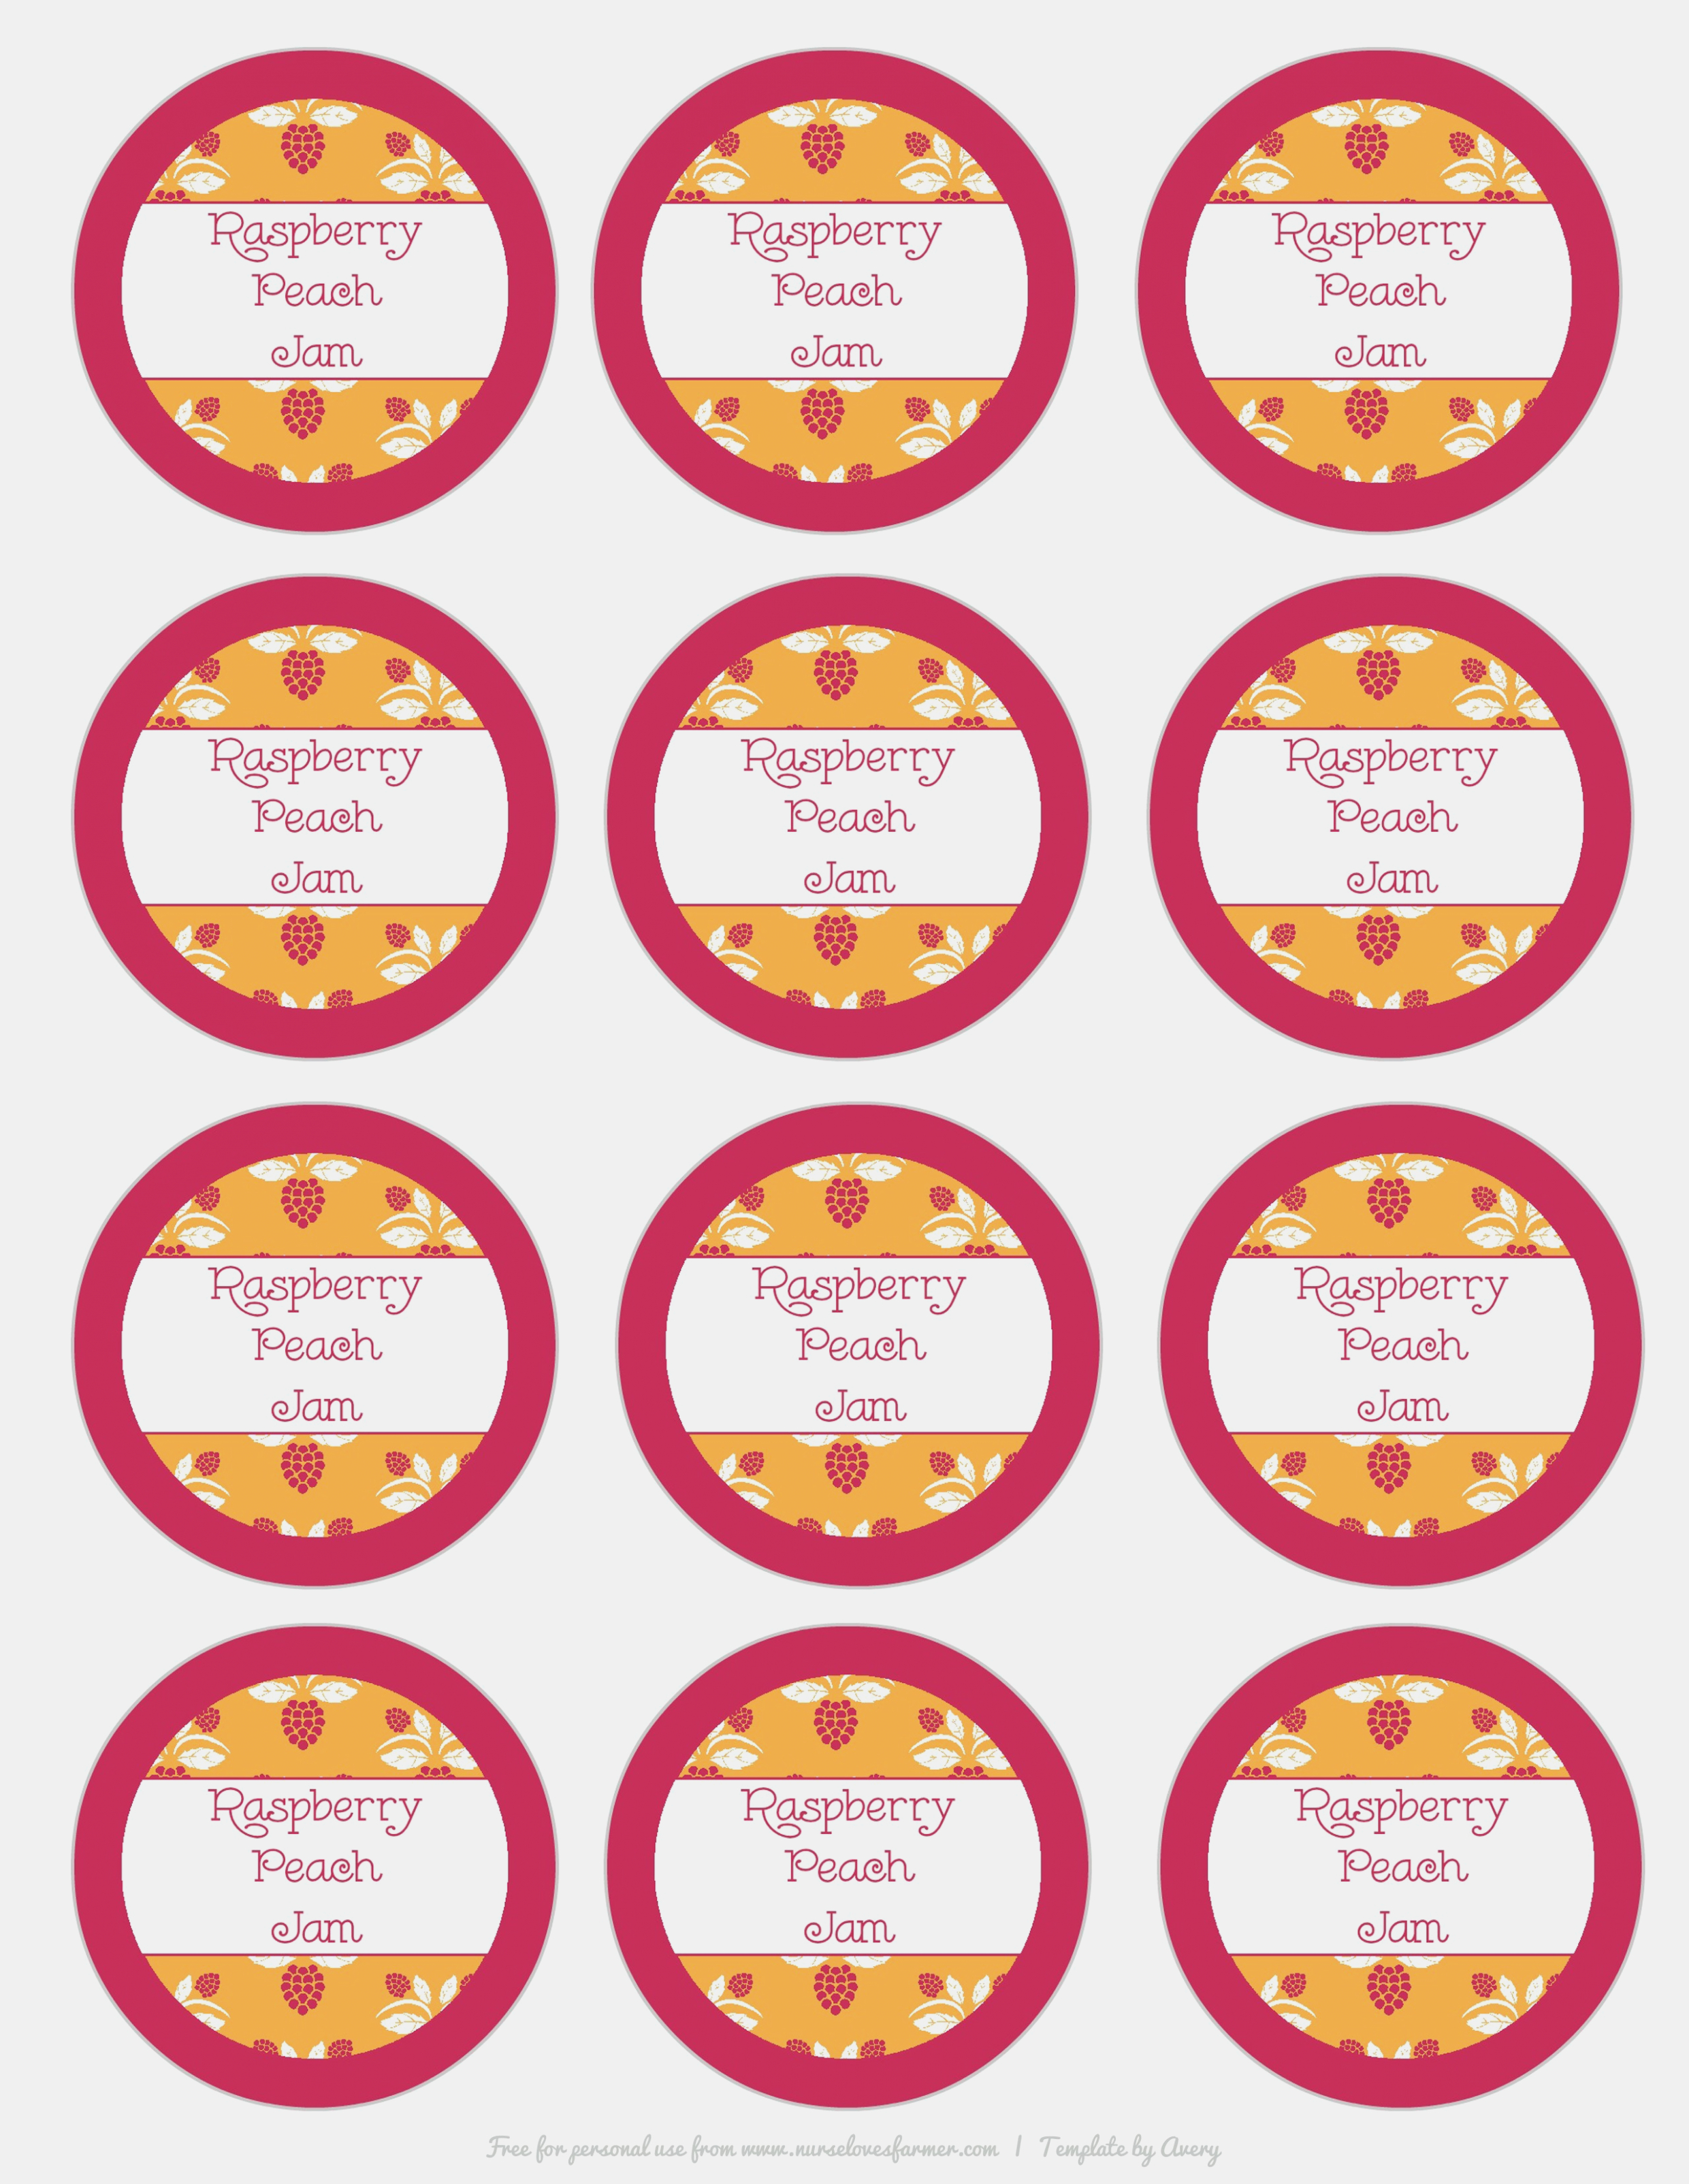 Free Printable Months Of The Year Labels Raspberry Peach Jam Nurse - Free Printable Months Of The Year Labels